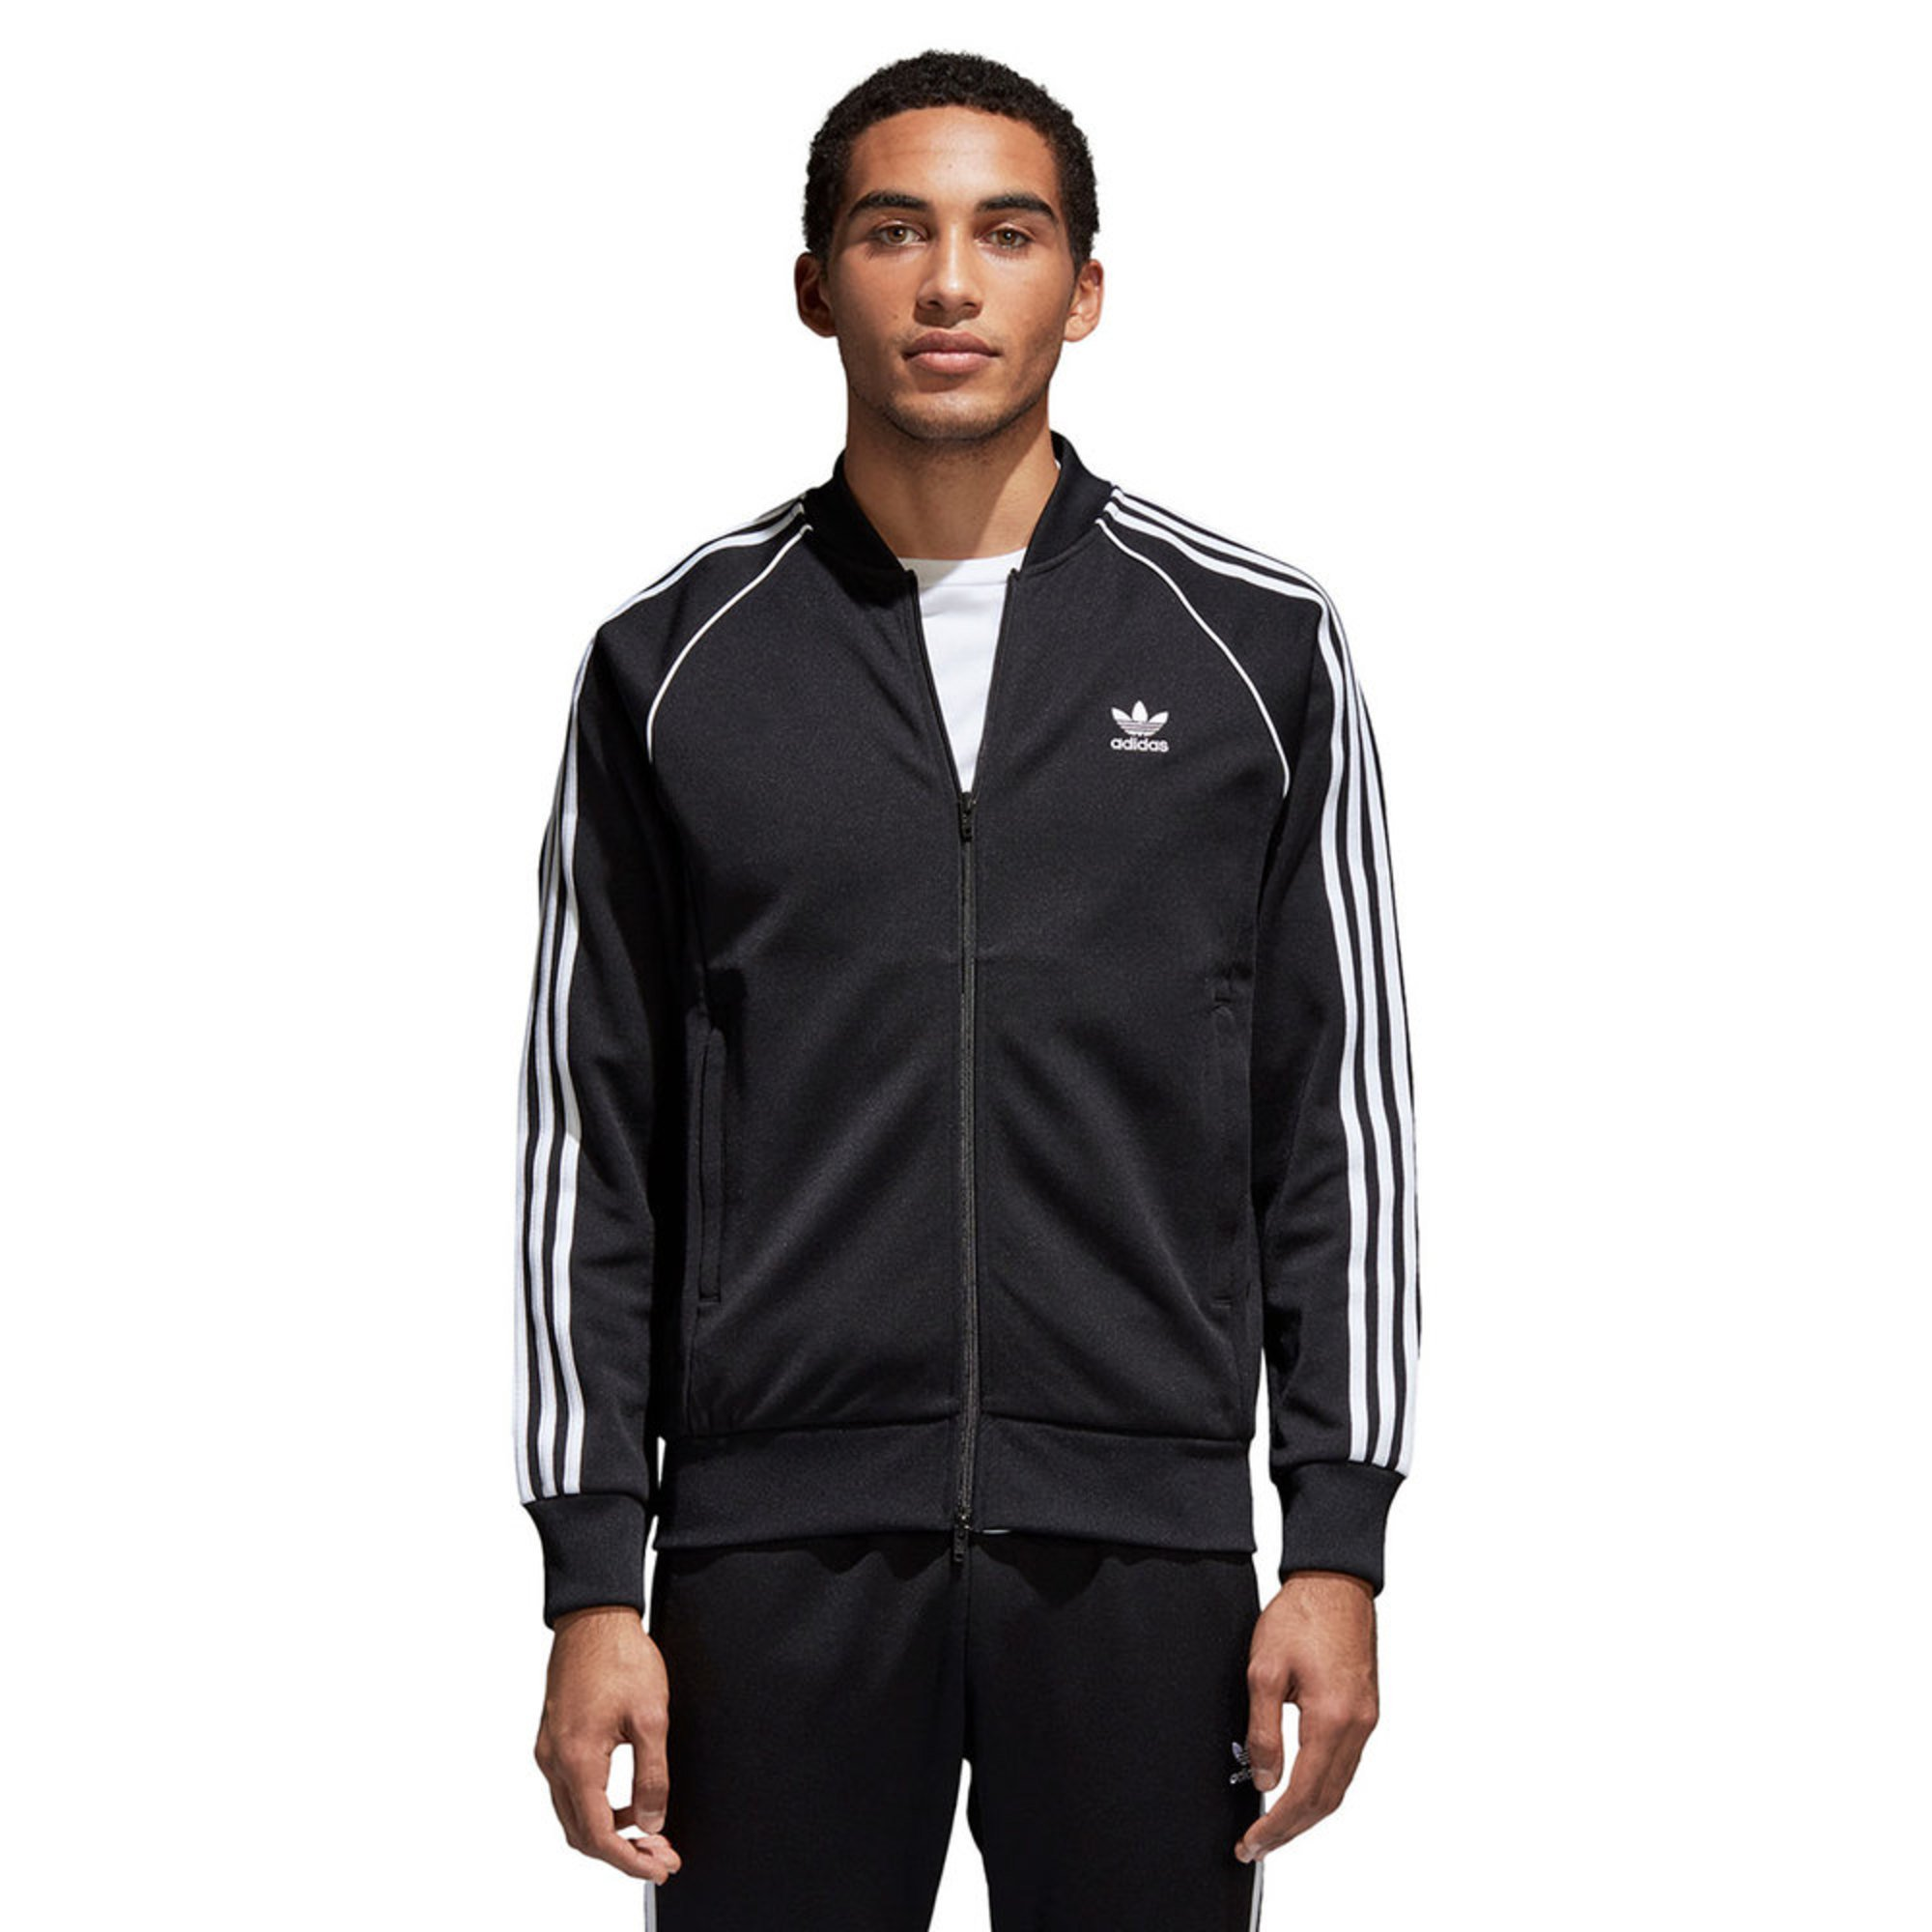 459a2387abc5 Adidas Men s Originals Superstar Track Jacket